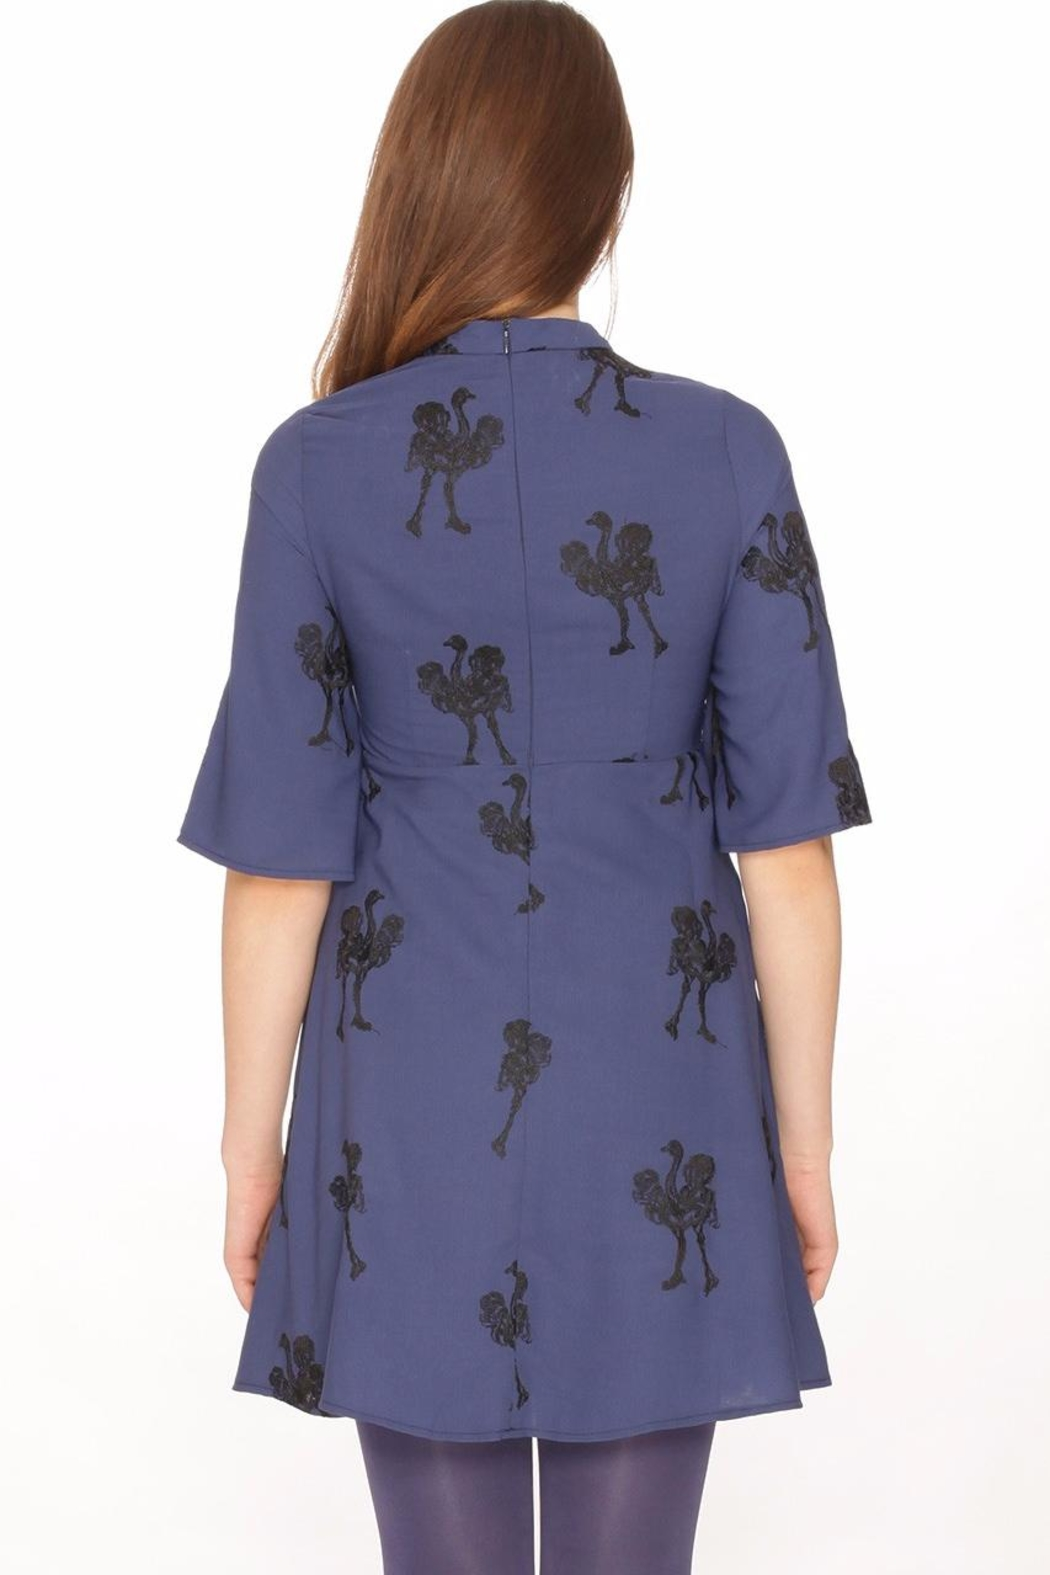 PepaLoves Embroidered Ostrich Dress - Front Full Image